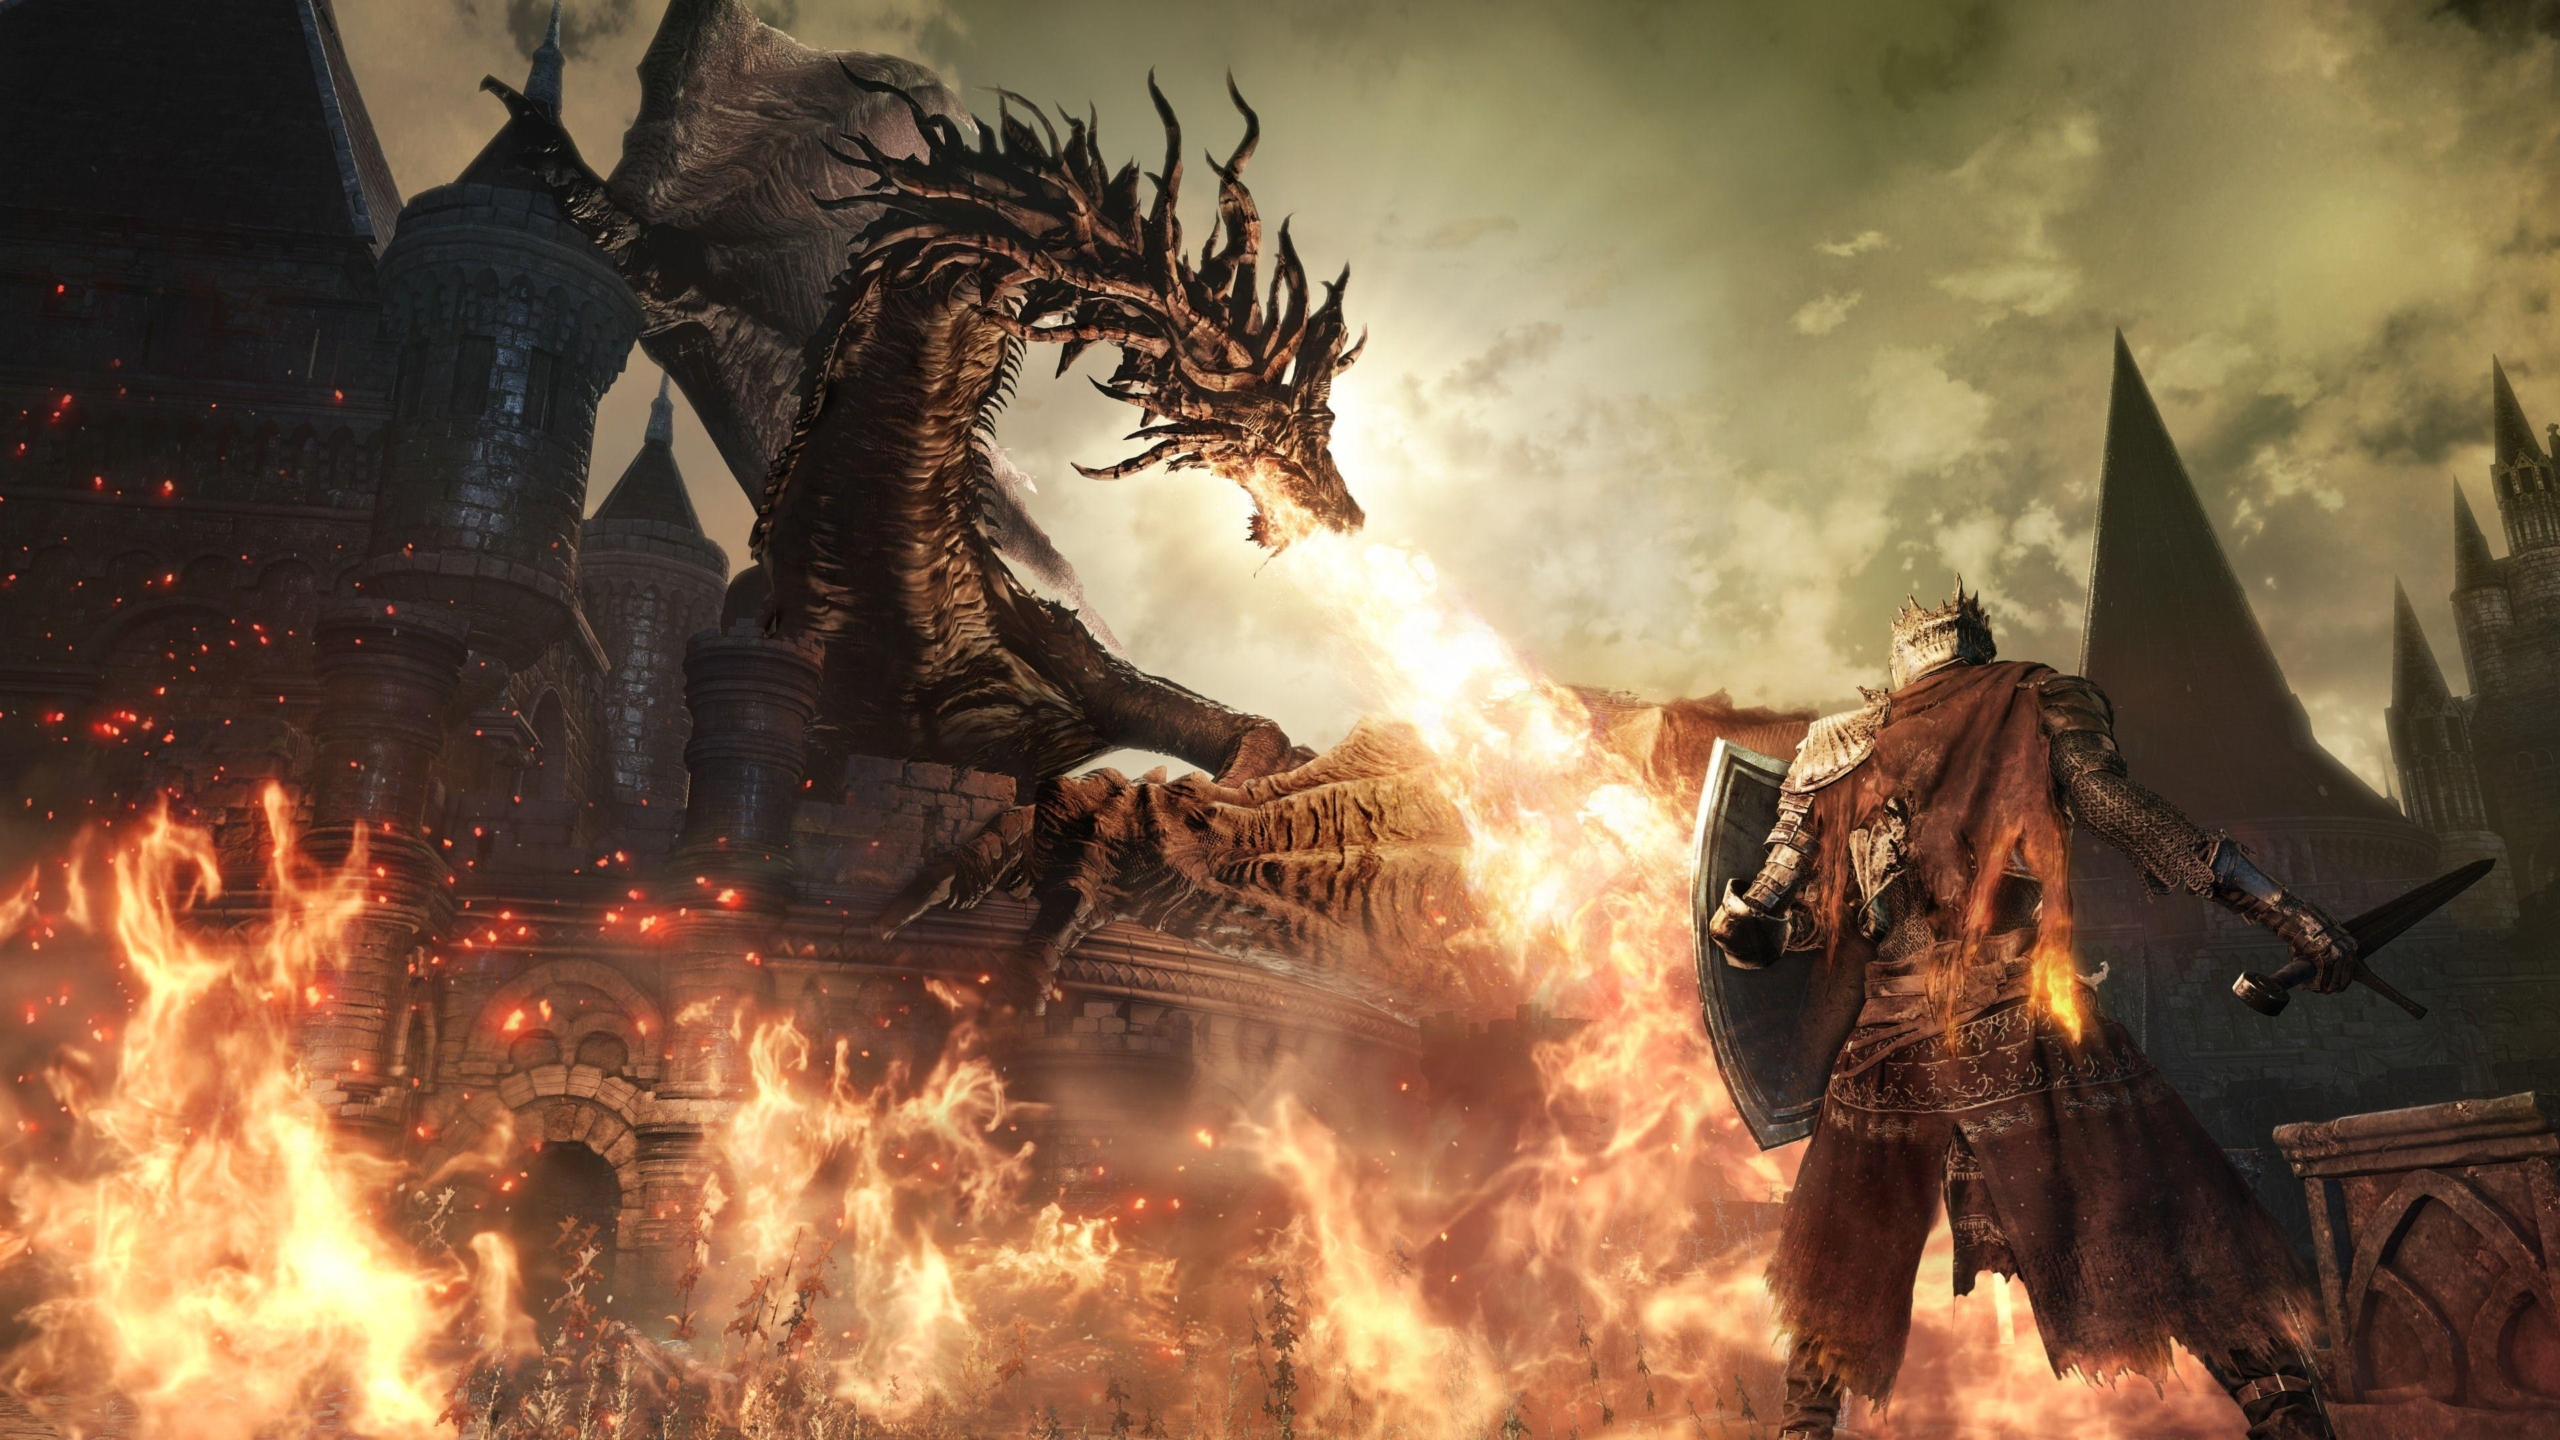 Download Dark Souls Wallpaper and Play Online